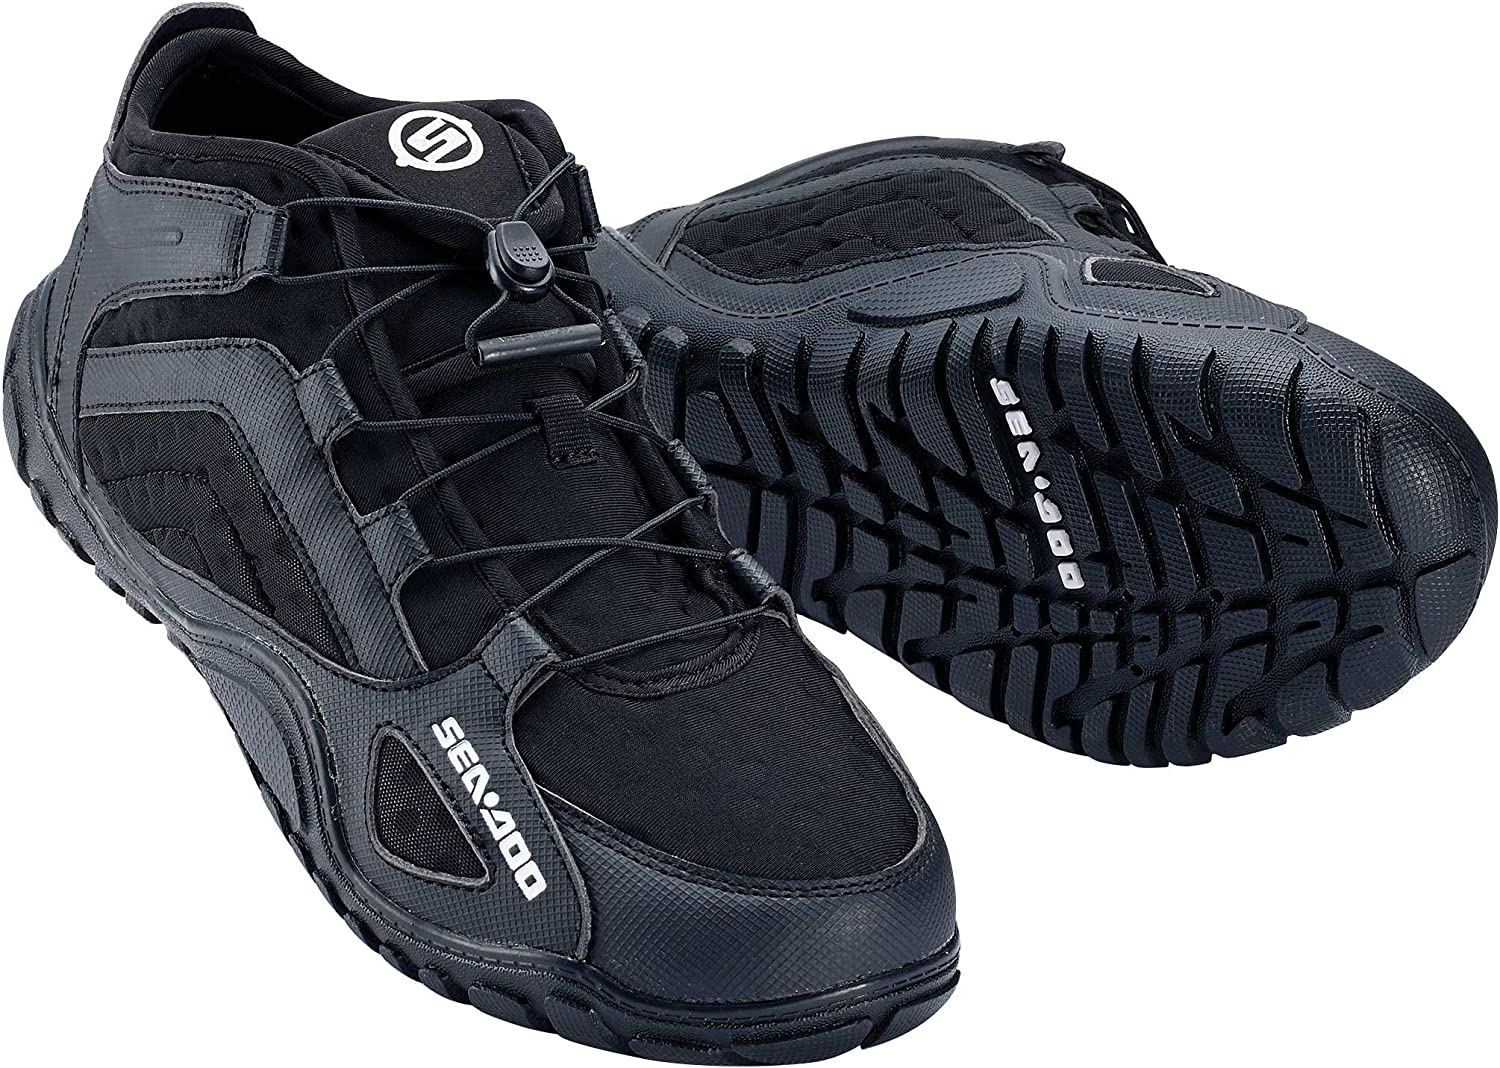 New Genuine OEM BRP Sea-Doo PWC Boat Riding shoes-Size 10